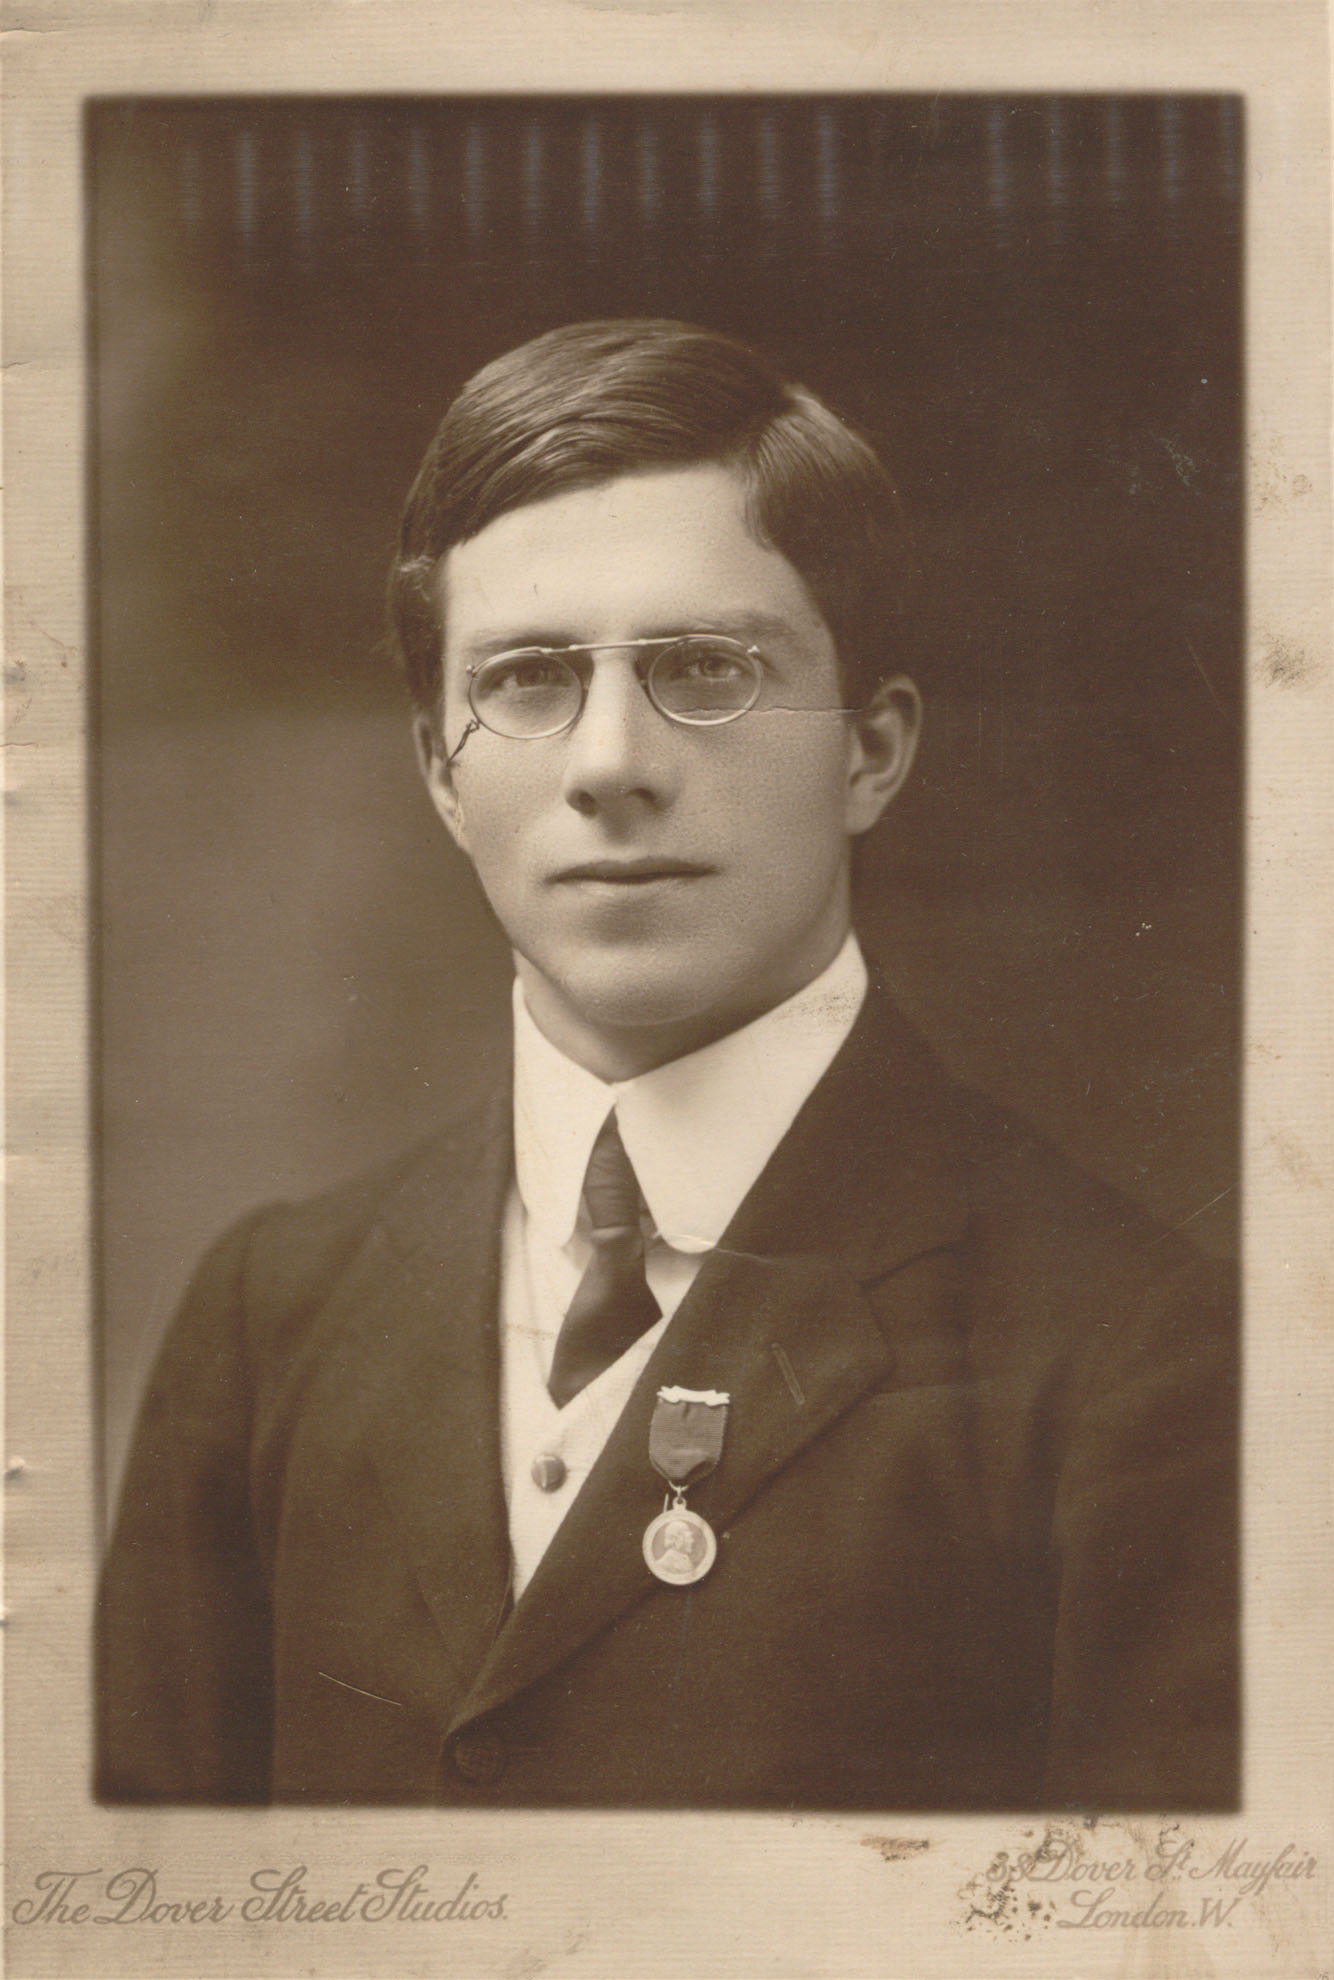 Ronald Fisher in his youth